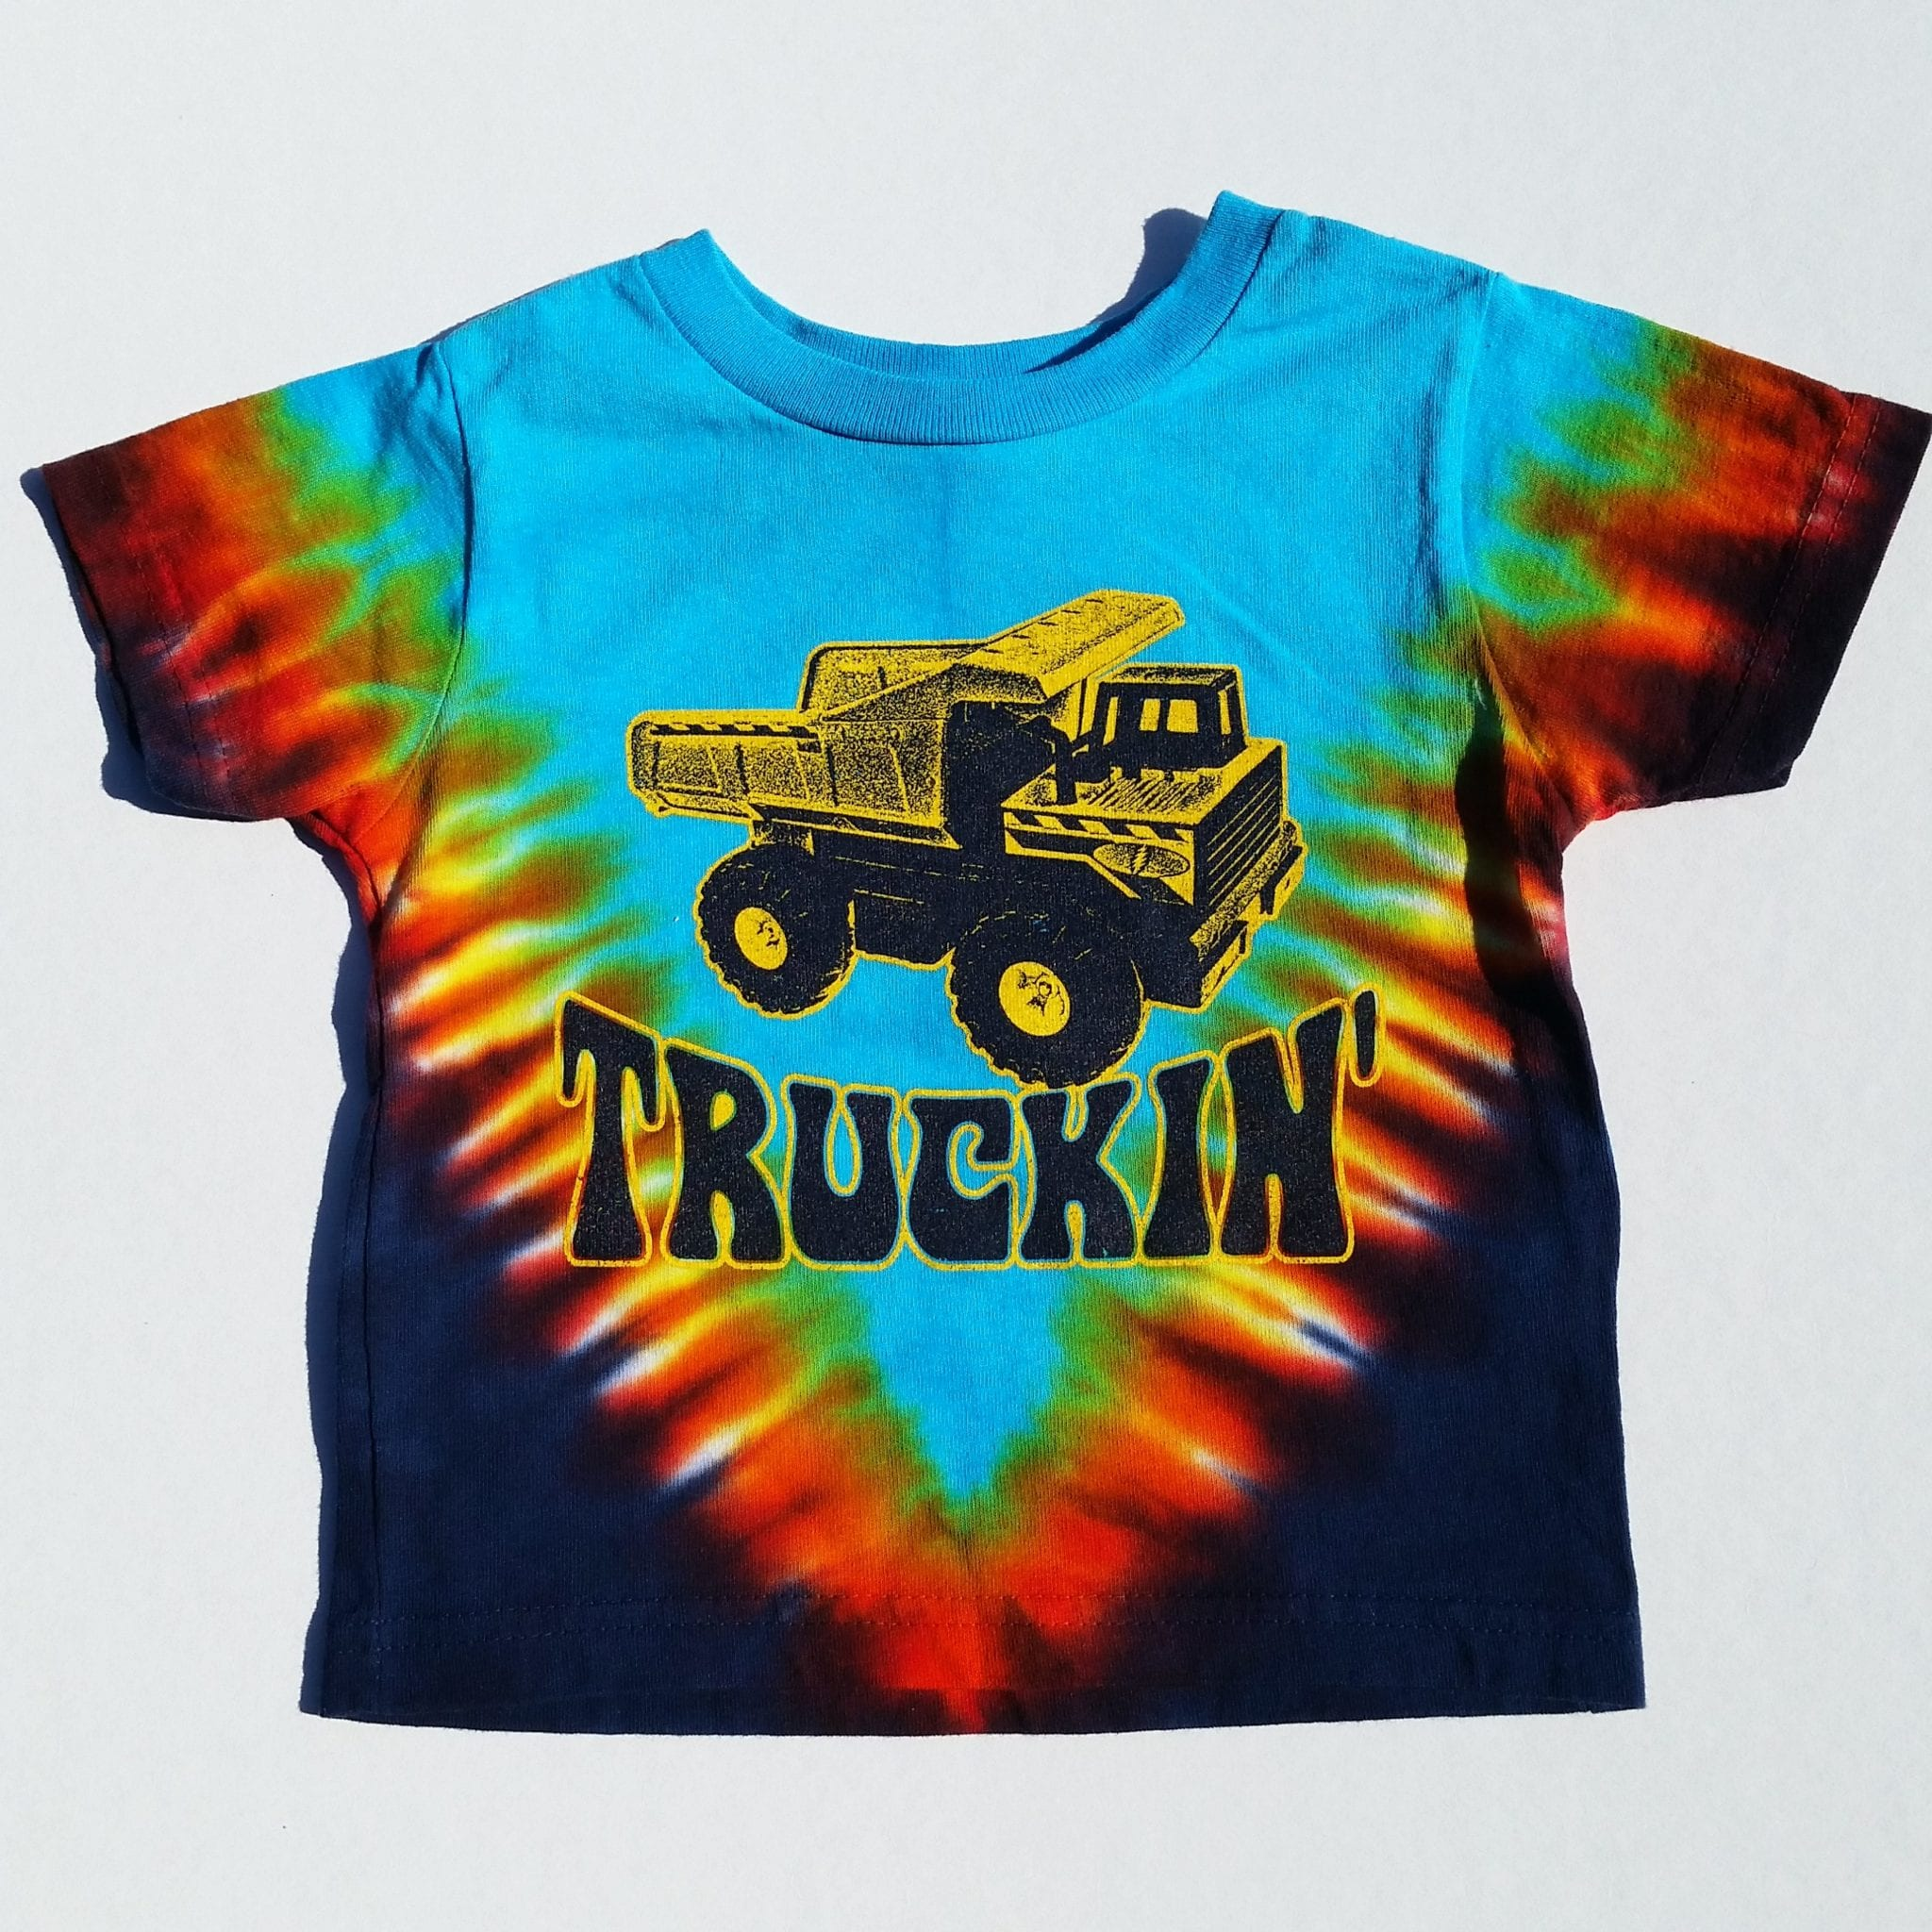 f85ca770 Truckin' toddler youth kids tie-dye t-shirt - Grateful Dead and ...